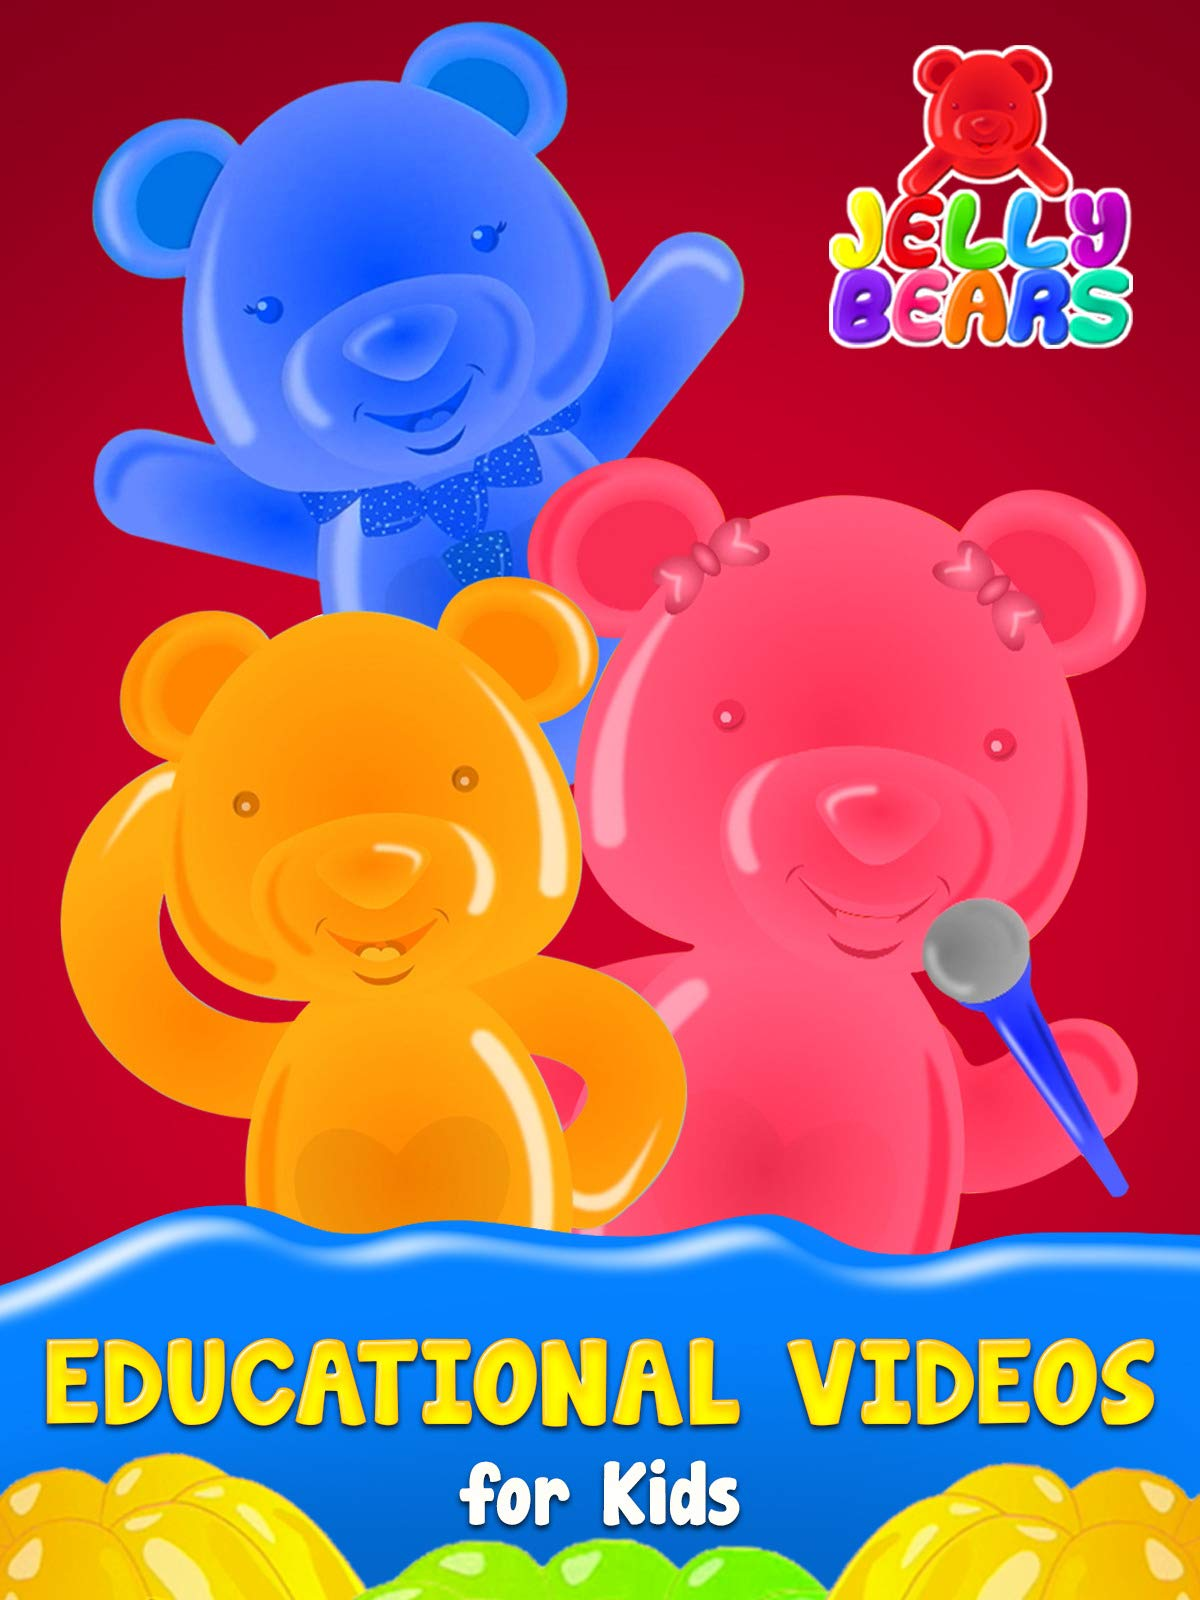 Educational Videos for Kids - Jelly Bears